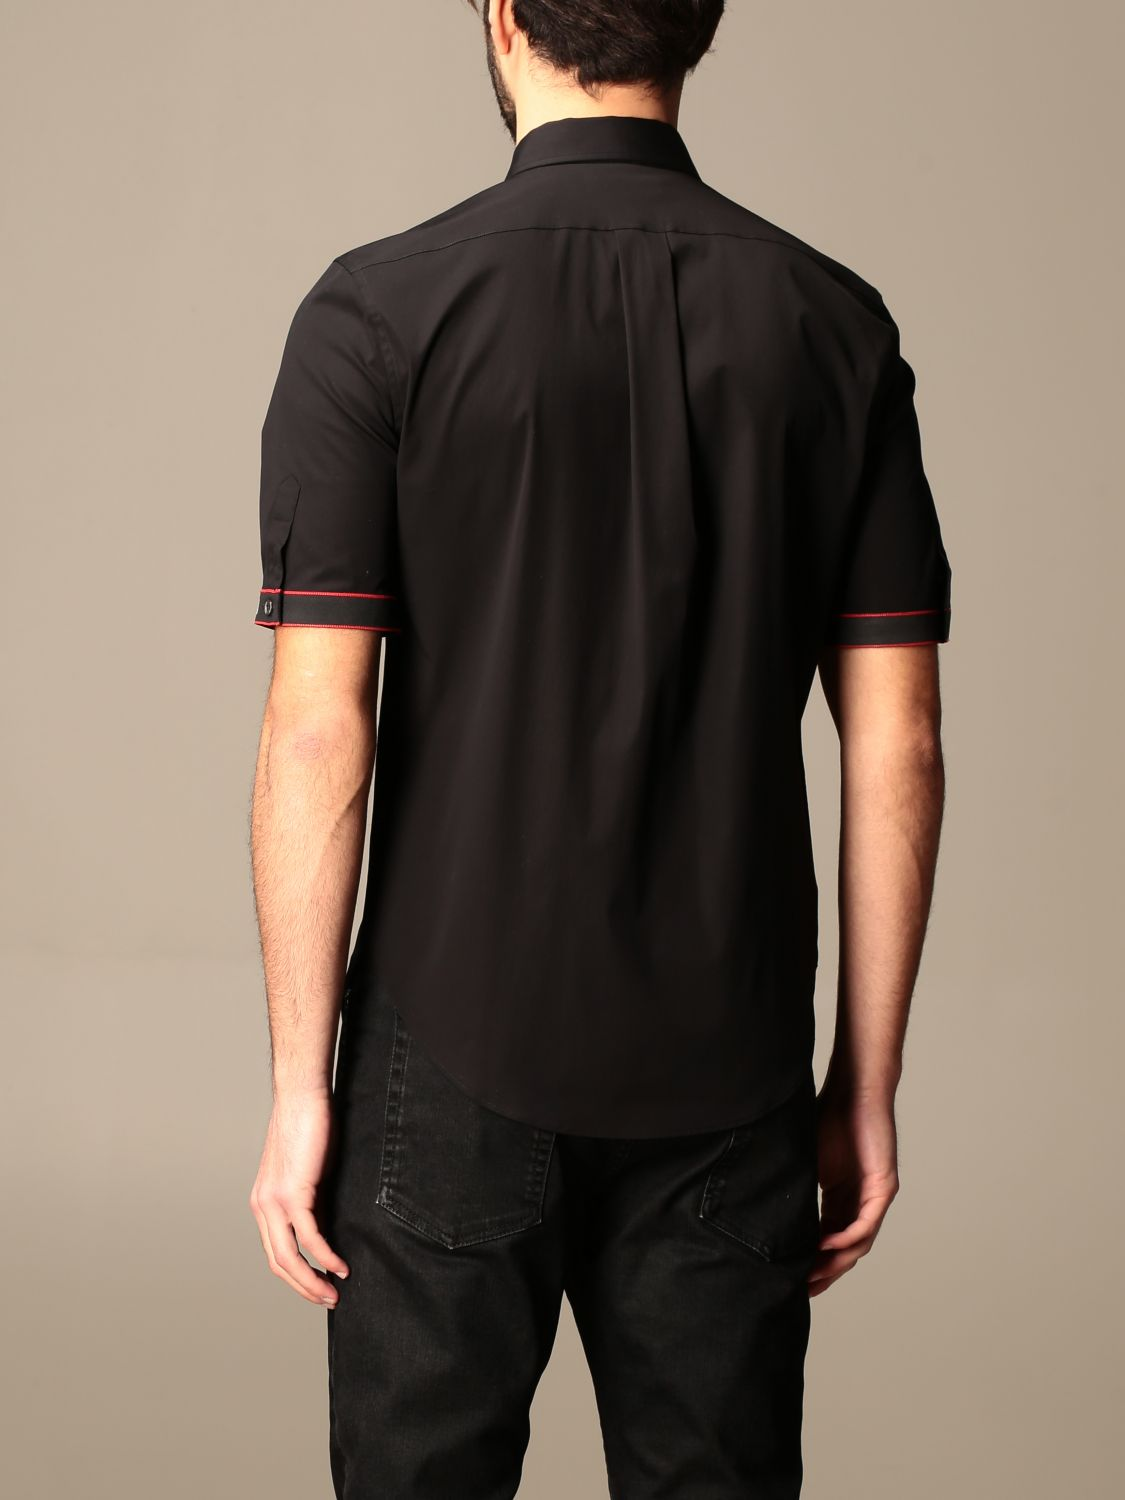 Shirt Alexander Mcqueen: Alexander McQueen shirt with logoed bands black 3